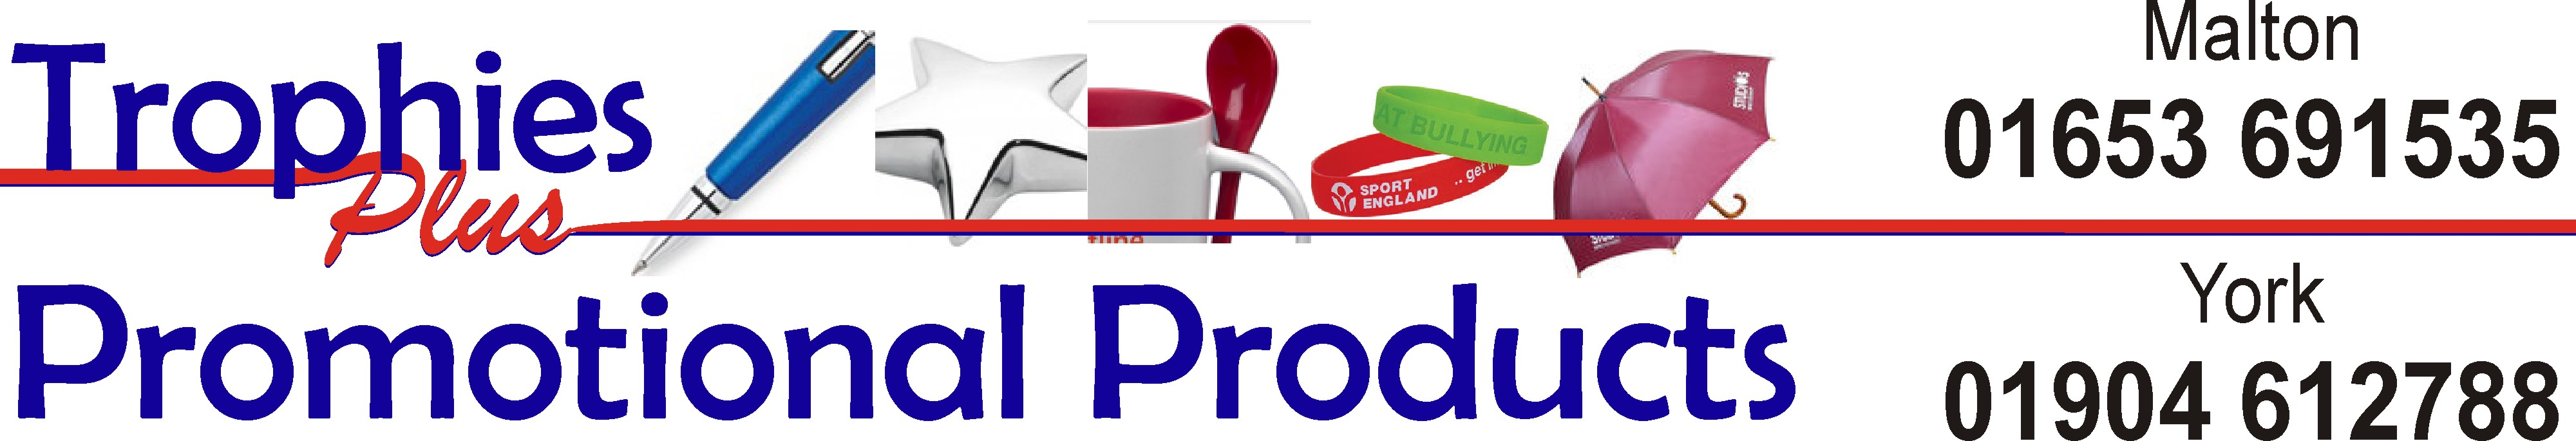 TrophiesPlus Promotional Products